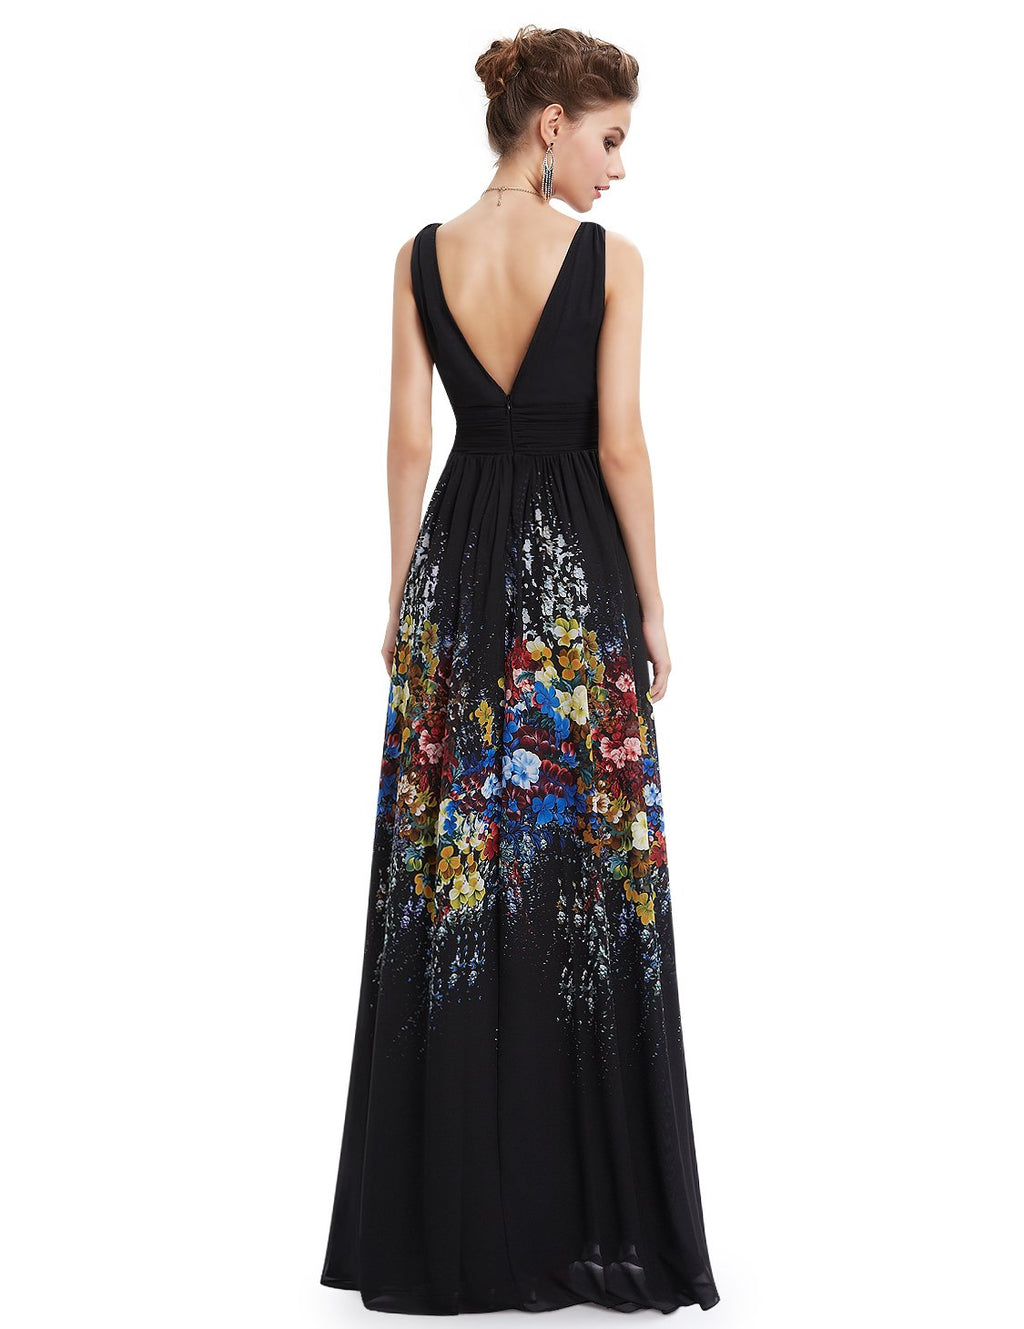 Sexy Neckline Floral Dress Black